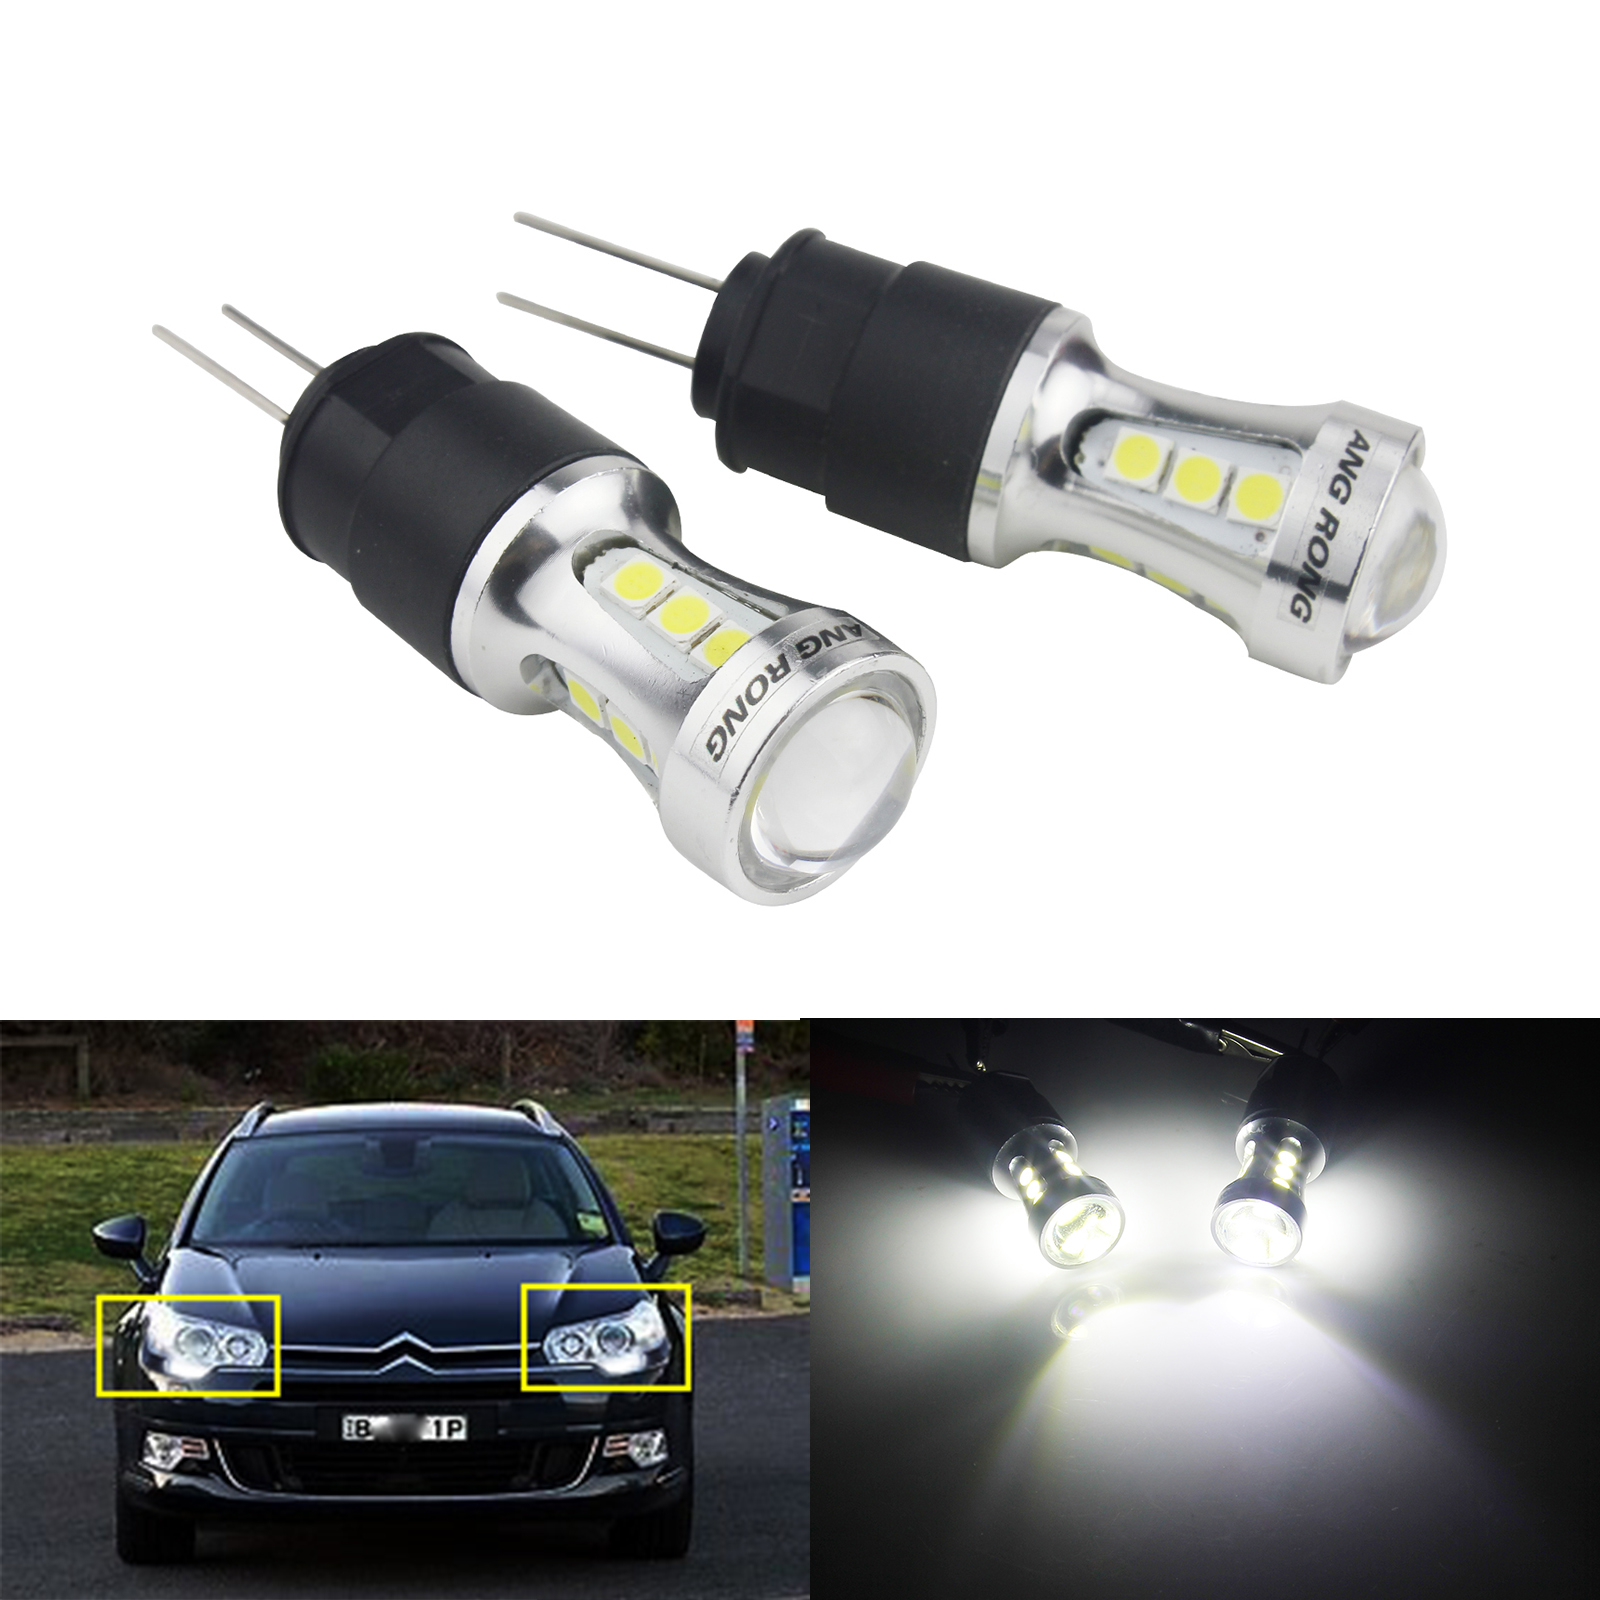 ANGRONG 2x HP24W G4 Bulb 18 SMD LED Car Day Lights Lamp DRL For Citron C5 For Peugeot 3008 5008 free ship g4 hp24w 9w amber white led daytime running lights for cars peugeot 3008 led drl light